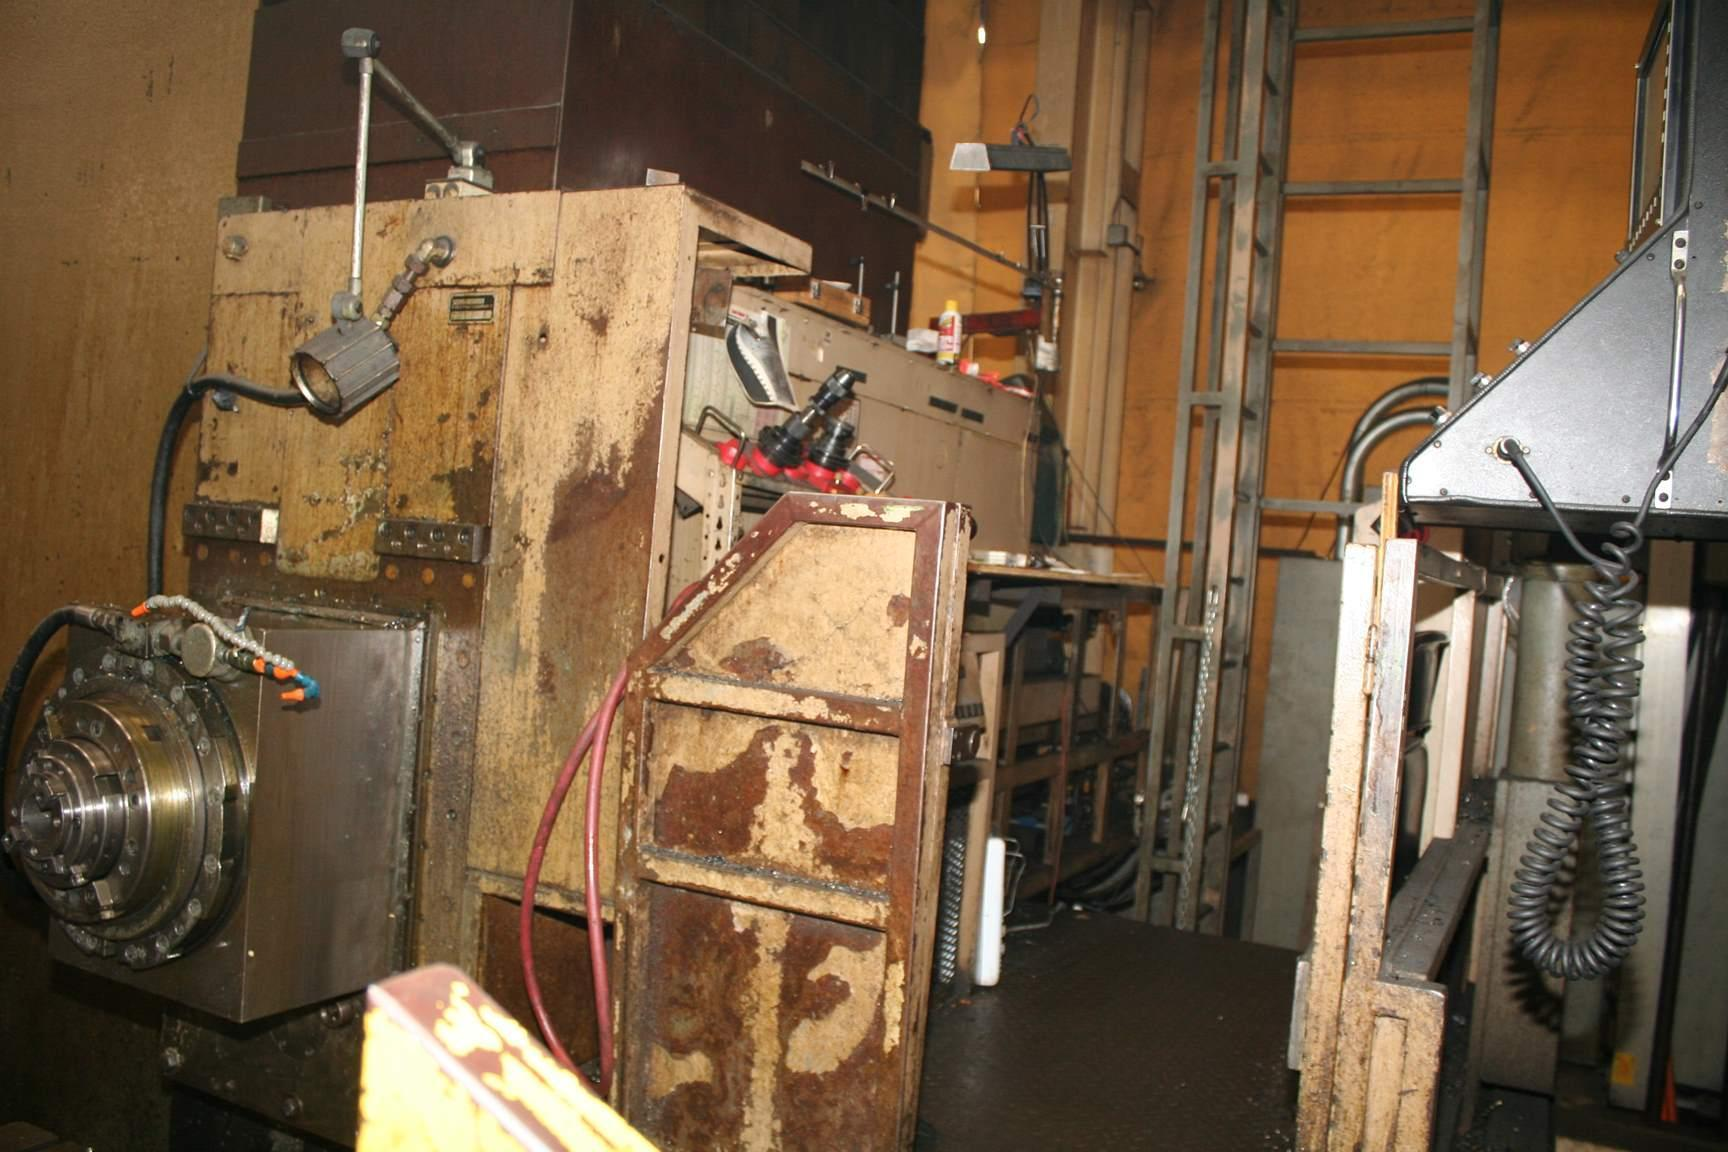 8.78' SCHARMANN FLOOR TYPE HORIZONTAL BORING MILL: STOCK #69635